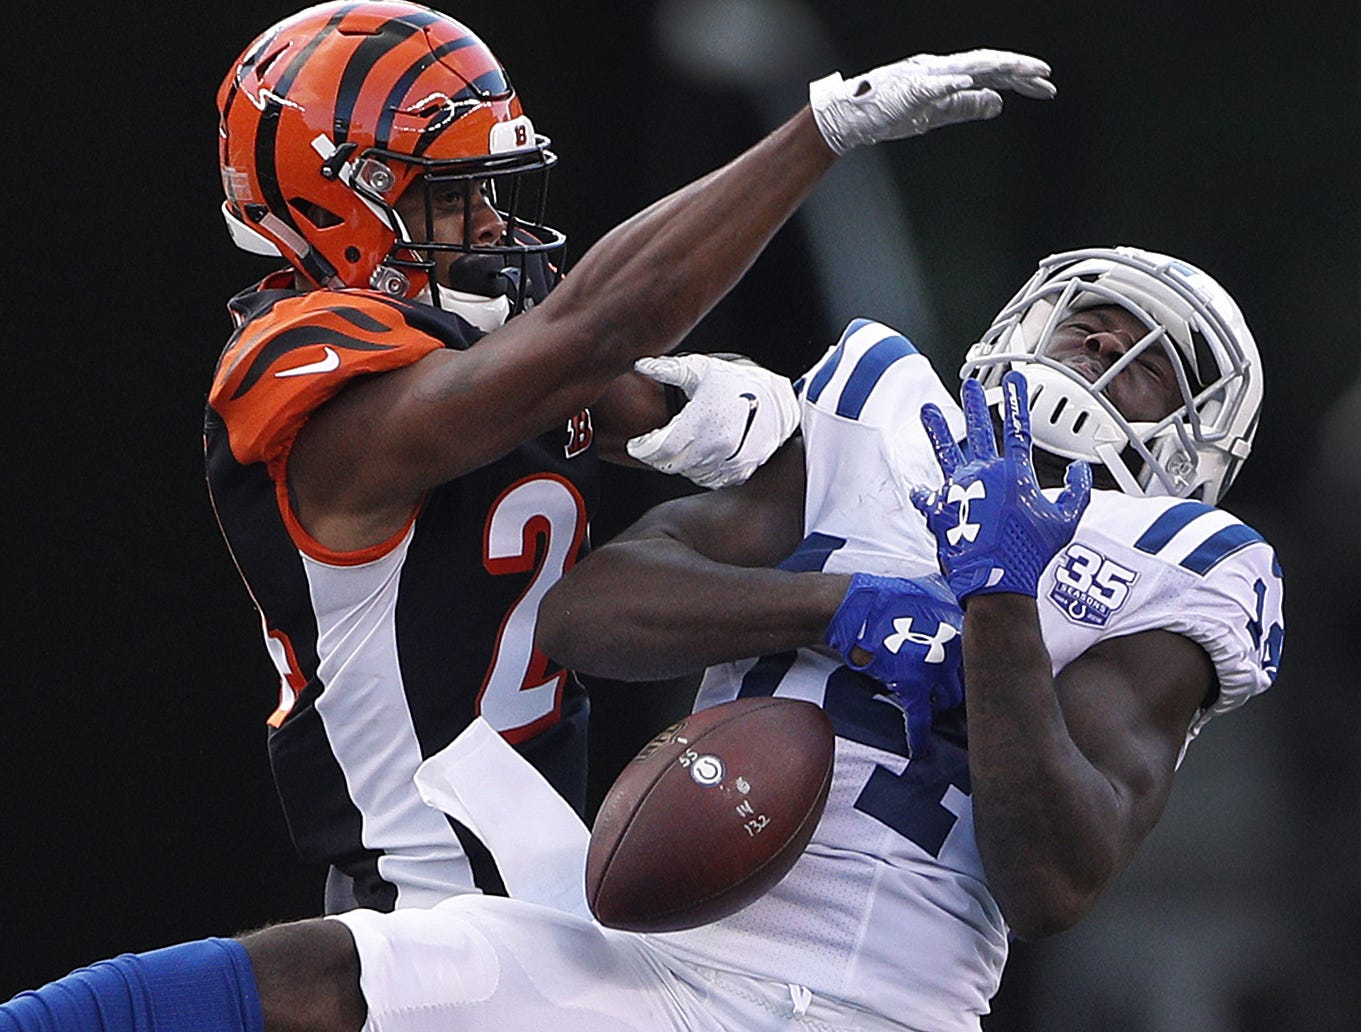 Cincinnati Bengals defensive back C.J. Goodwin (24) knocks the ball away from Indianapolis Colts wide receiver Zach Pascal (14) in the first half of their preseason football game at Paul Brown Stadium in Cincinnati, OH. on Thursday, Aug. 30, 2018.